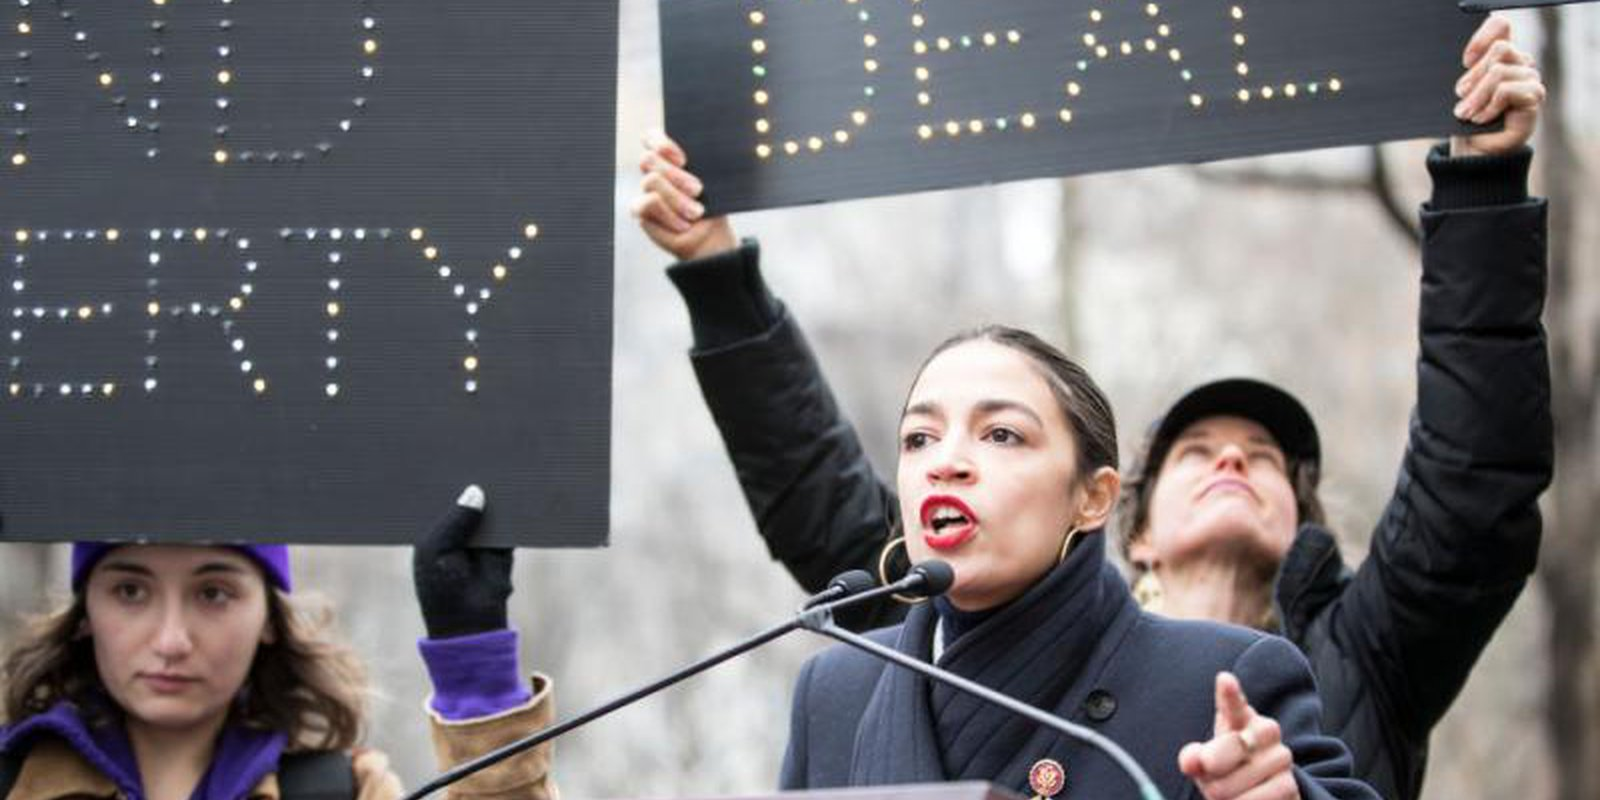 Alexandria Ocasio-Cortez addresses a crowd at the annual Women's March on 19 January 2019. Ocasio-Cortez is one of the newly-elected Democrats pushing for a Green New Deal. Photo: Getty Images.